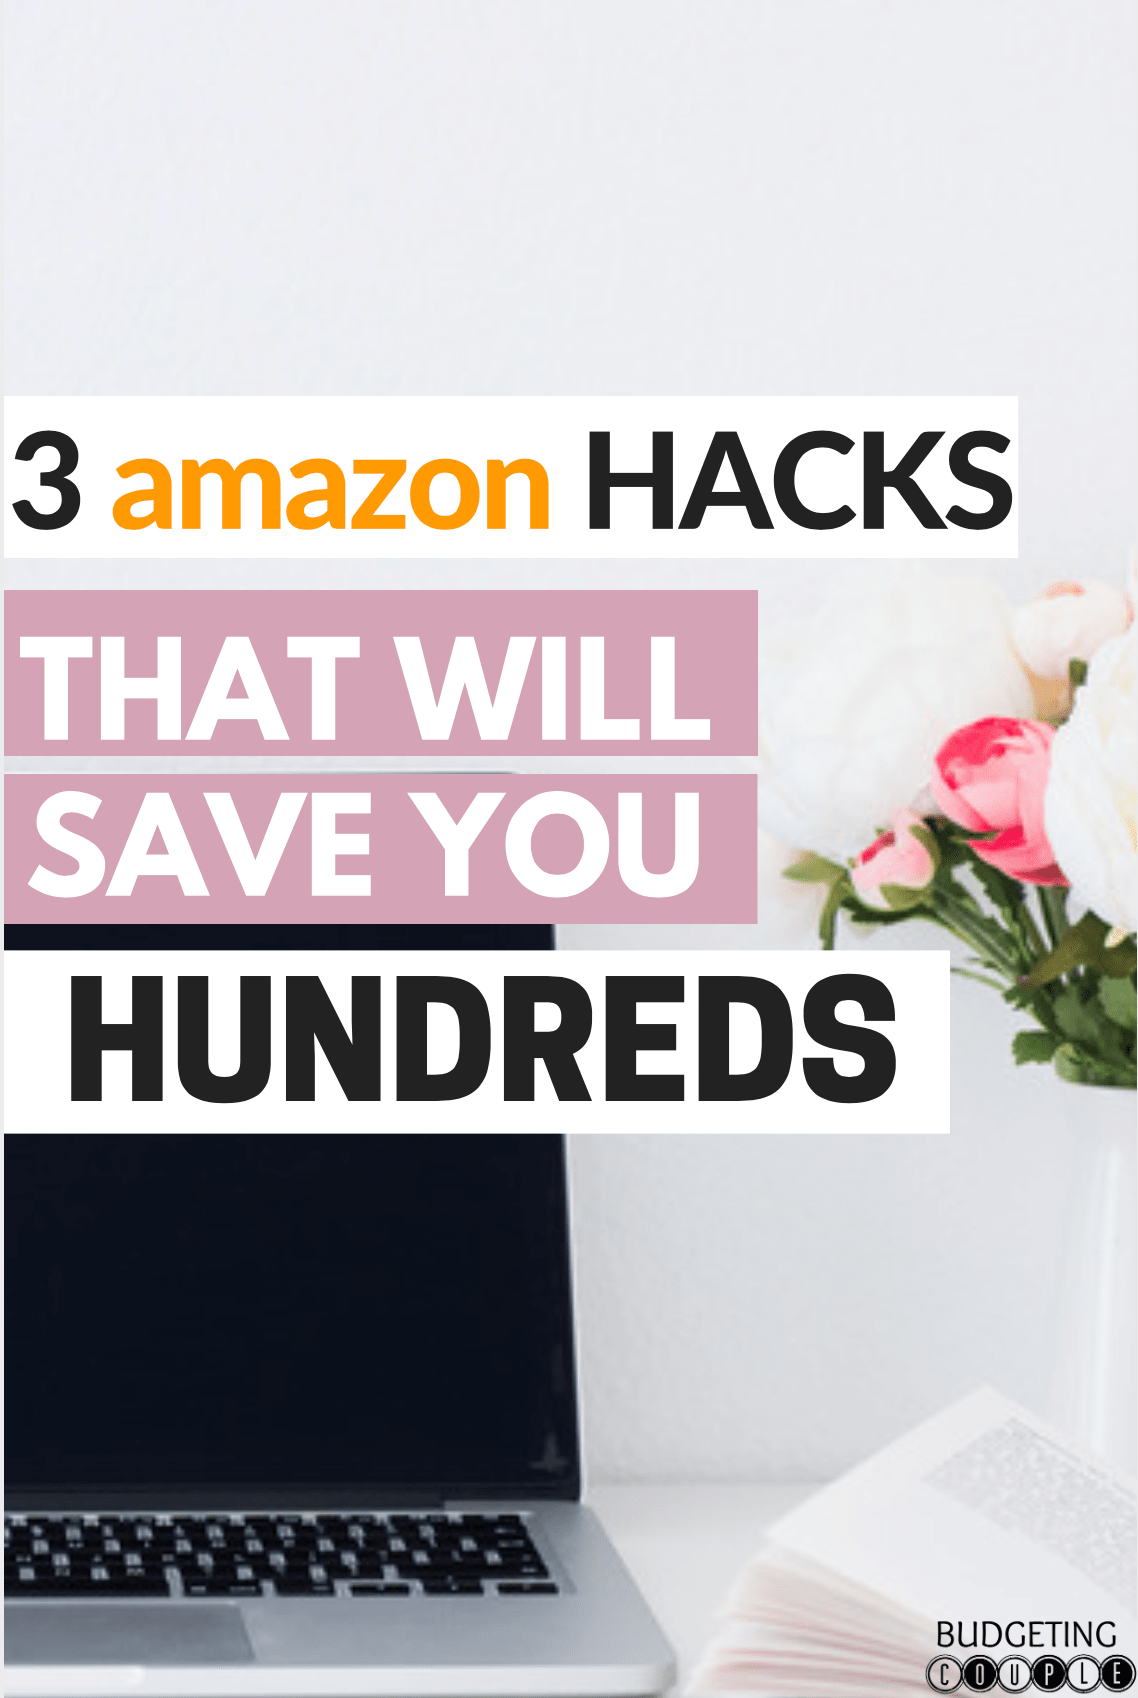 amazon hacks, save money on amazon, amazon warehouse deal, how to save money on amazon, save money, budget, budgeting